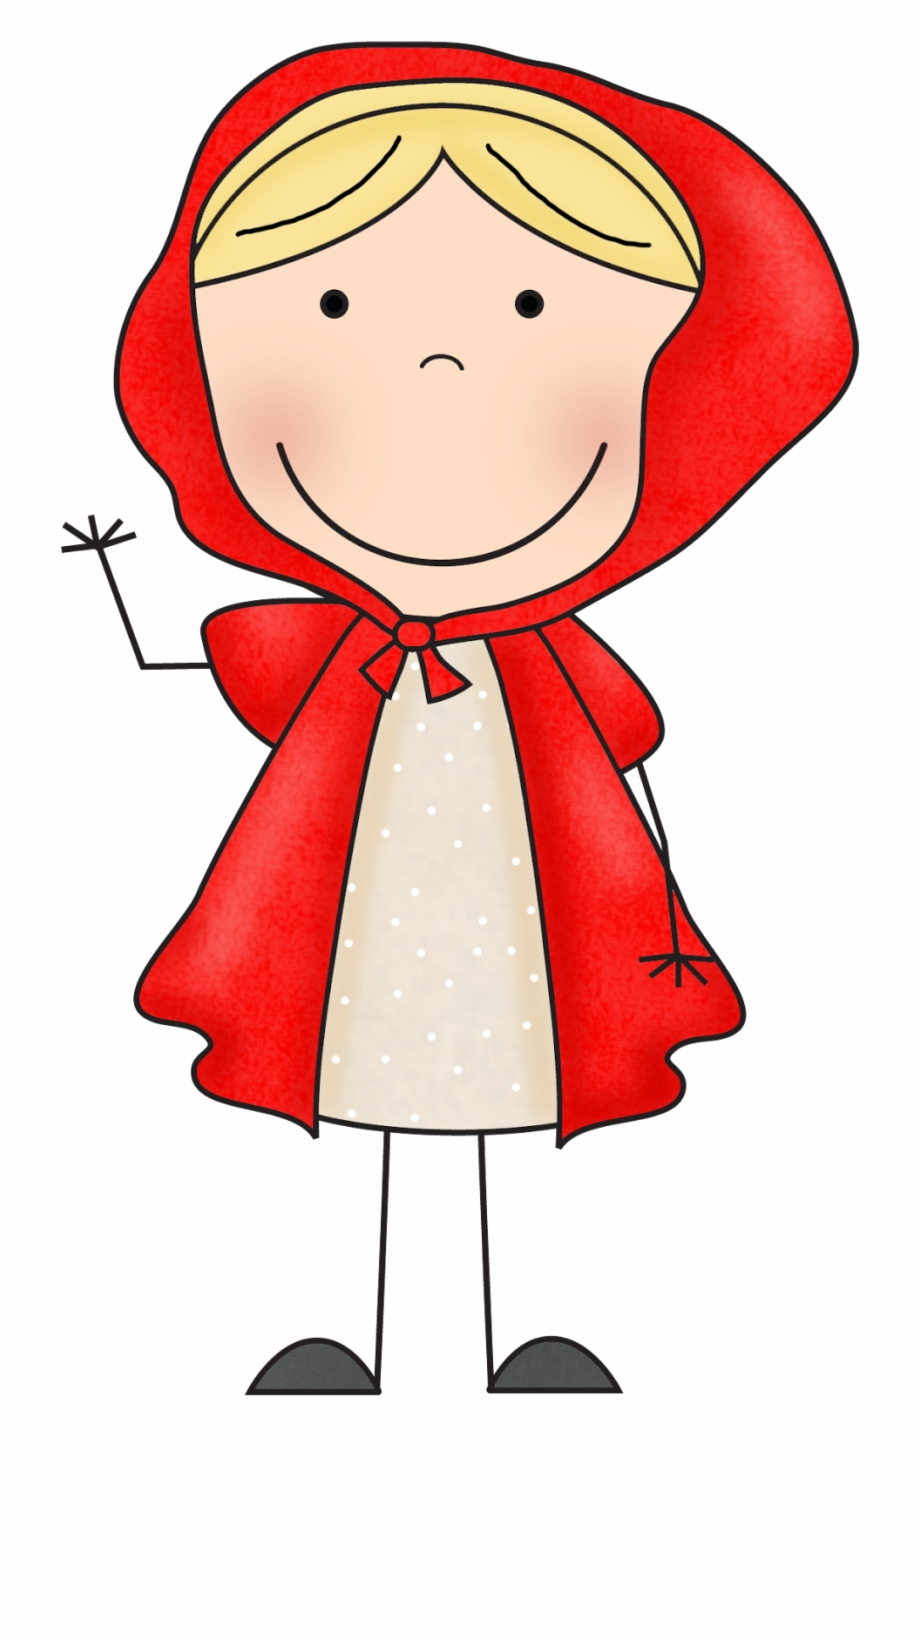 My hood clipart image transparent download Goldilocks Clipart - Little Red Riding Hood Clip Art Free PNG Images ... image transparent download